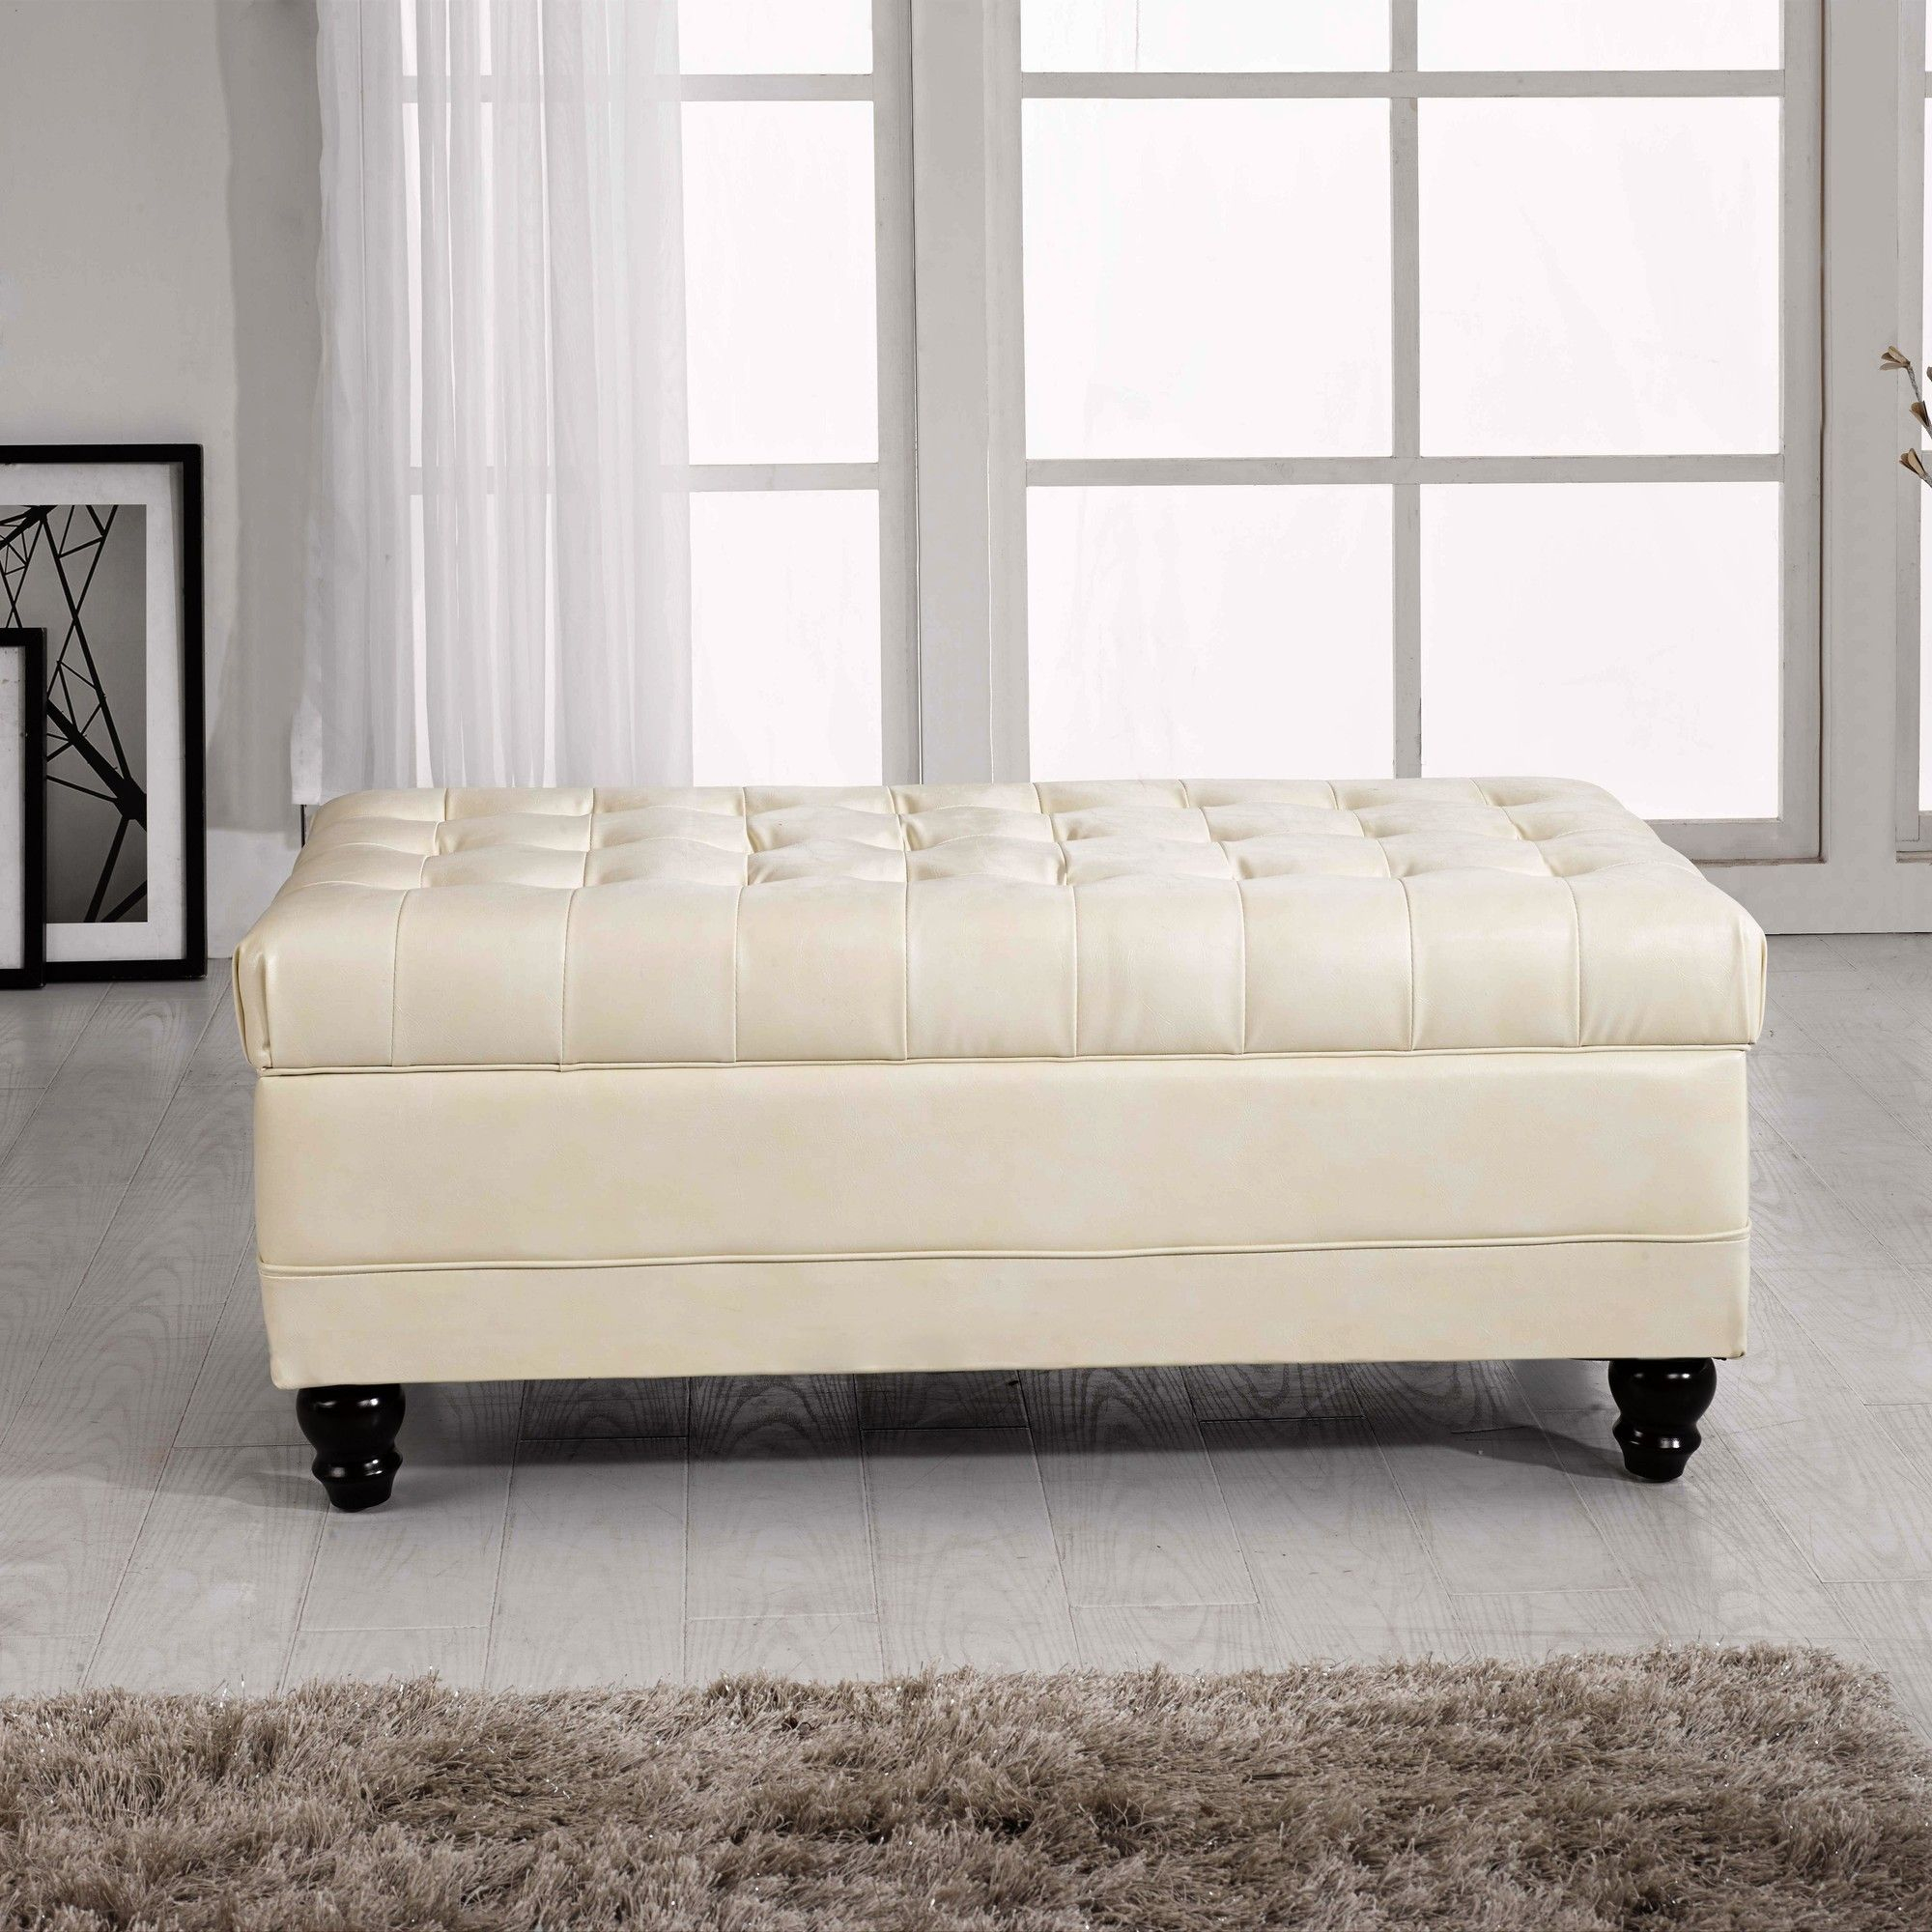 Marvelous Milroy Pouf Storage Ottoman Bench Tufted Storage Bench Pdpeps Interior Chair Design Pdpepsorg